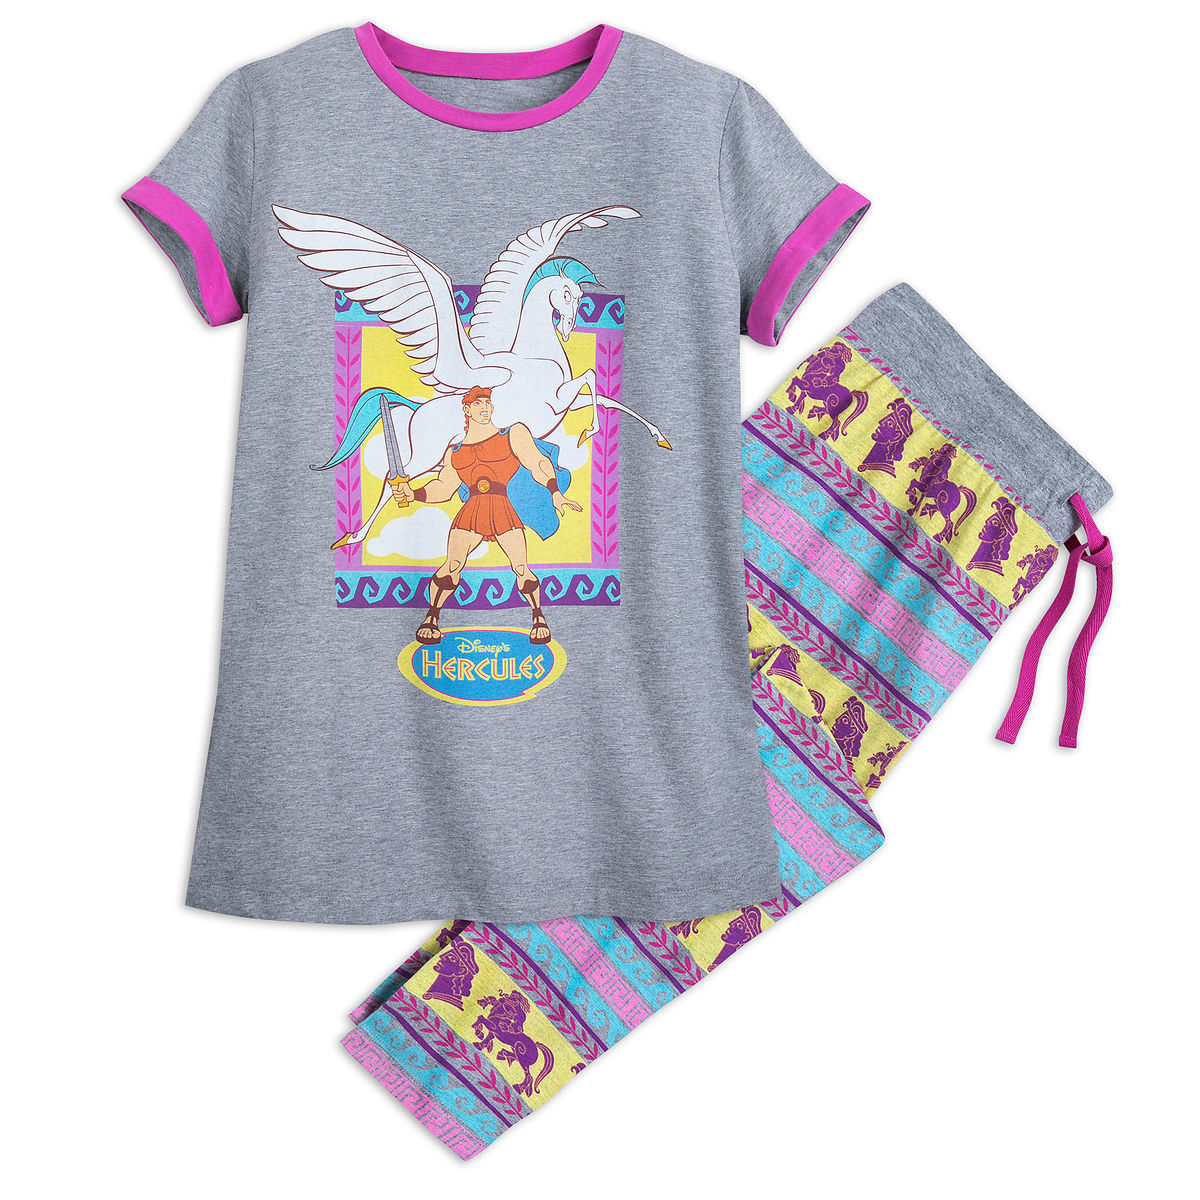 Product Image of Hercules and Pegasus Pajama Set for Women - Oh My Disney    1 17c234775